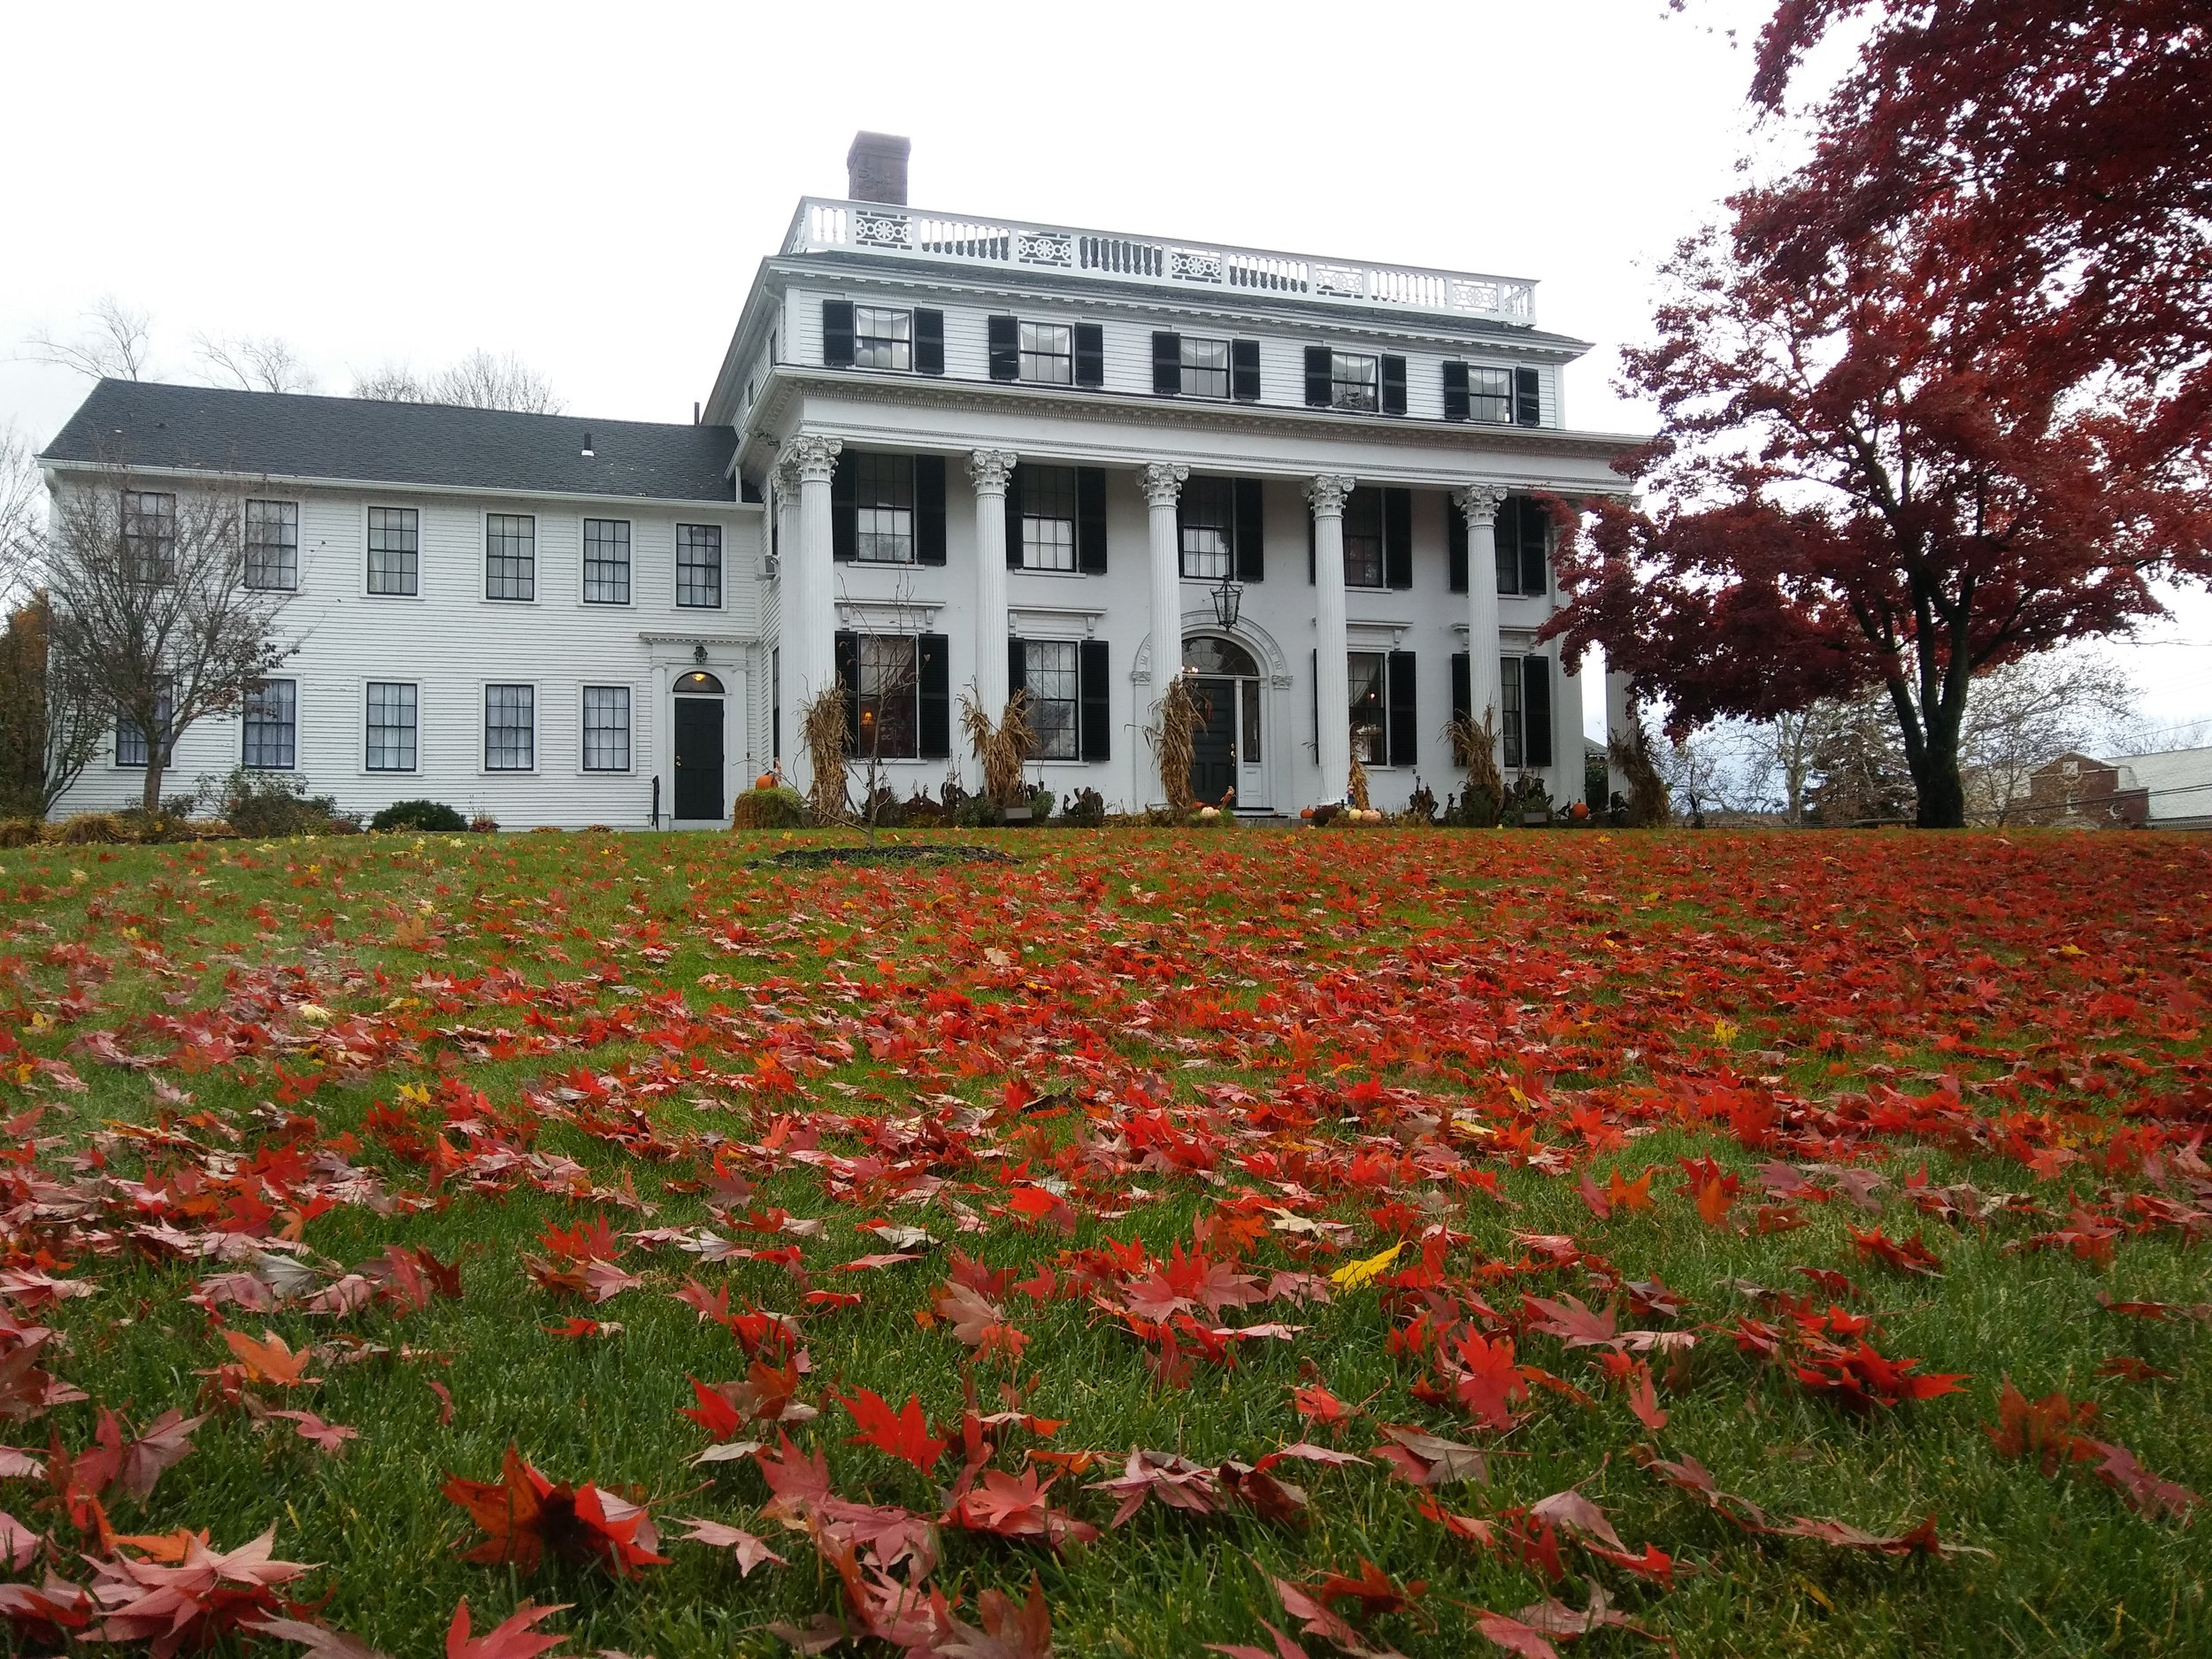 The front lawn festooned with autumn leaves, fall. Photo: Mary Bowen, Asa Waters Mansion.